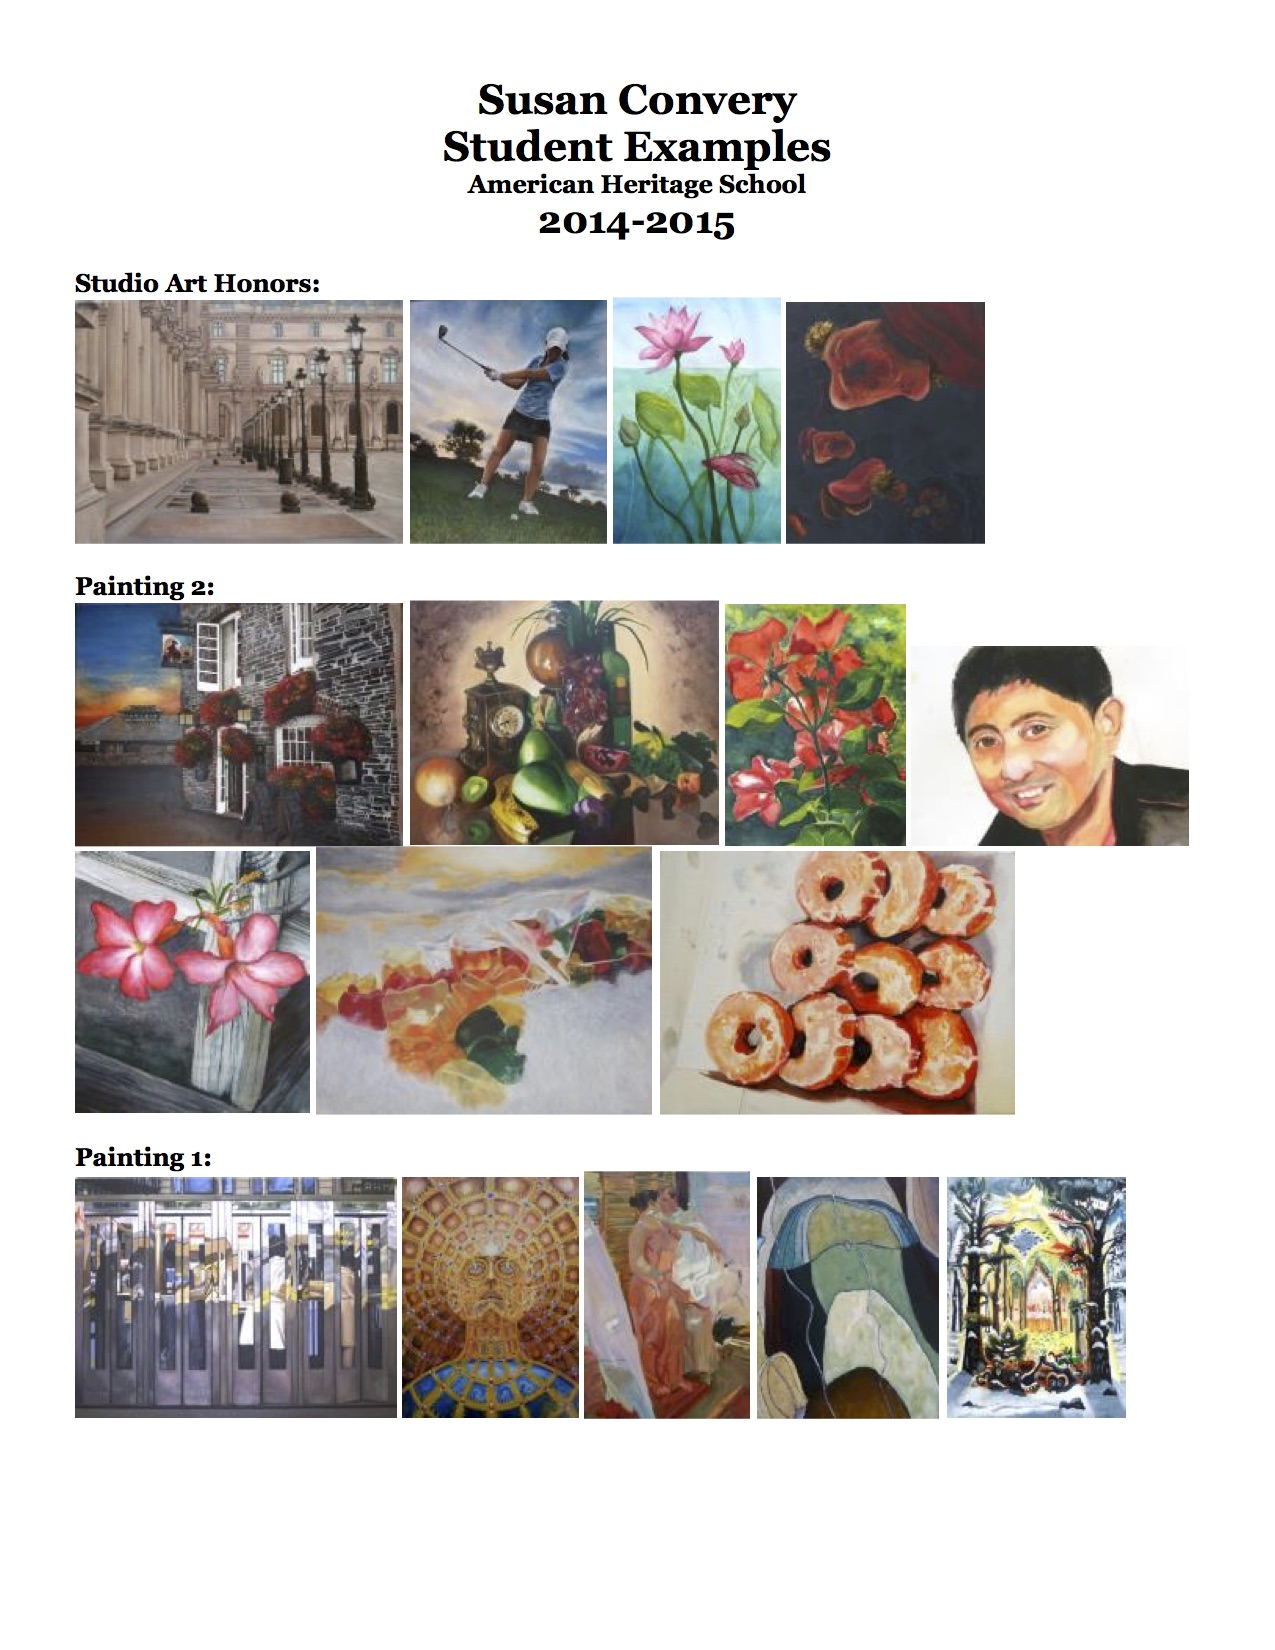 Susan Convery Student Examples 2014 2015